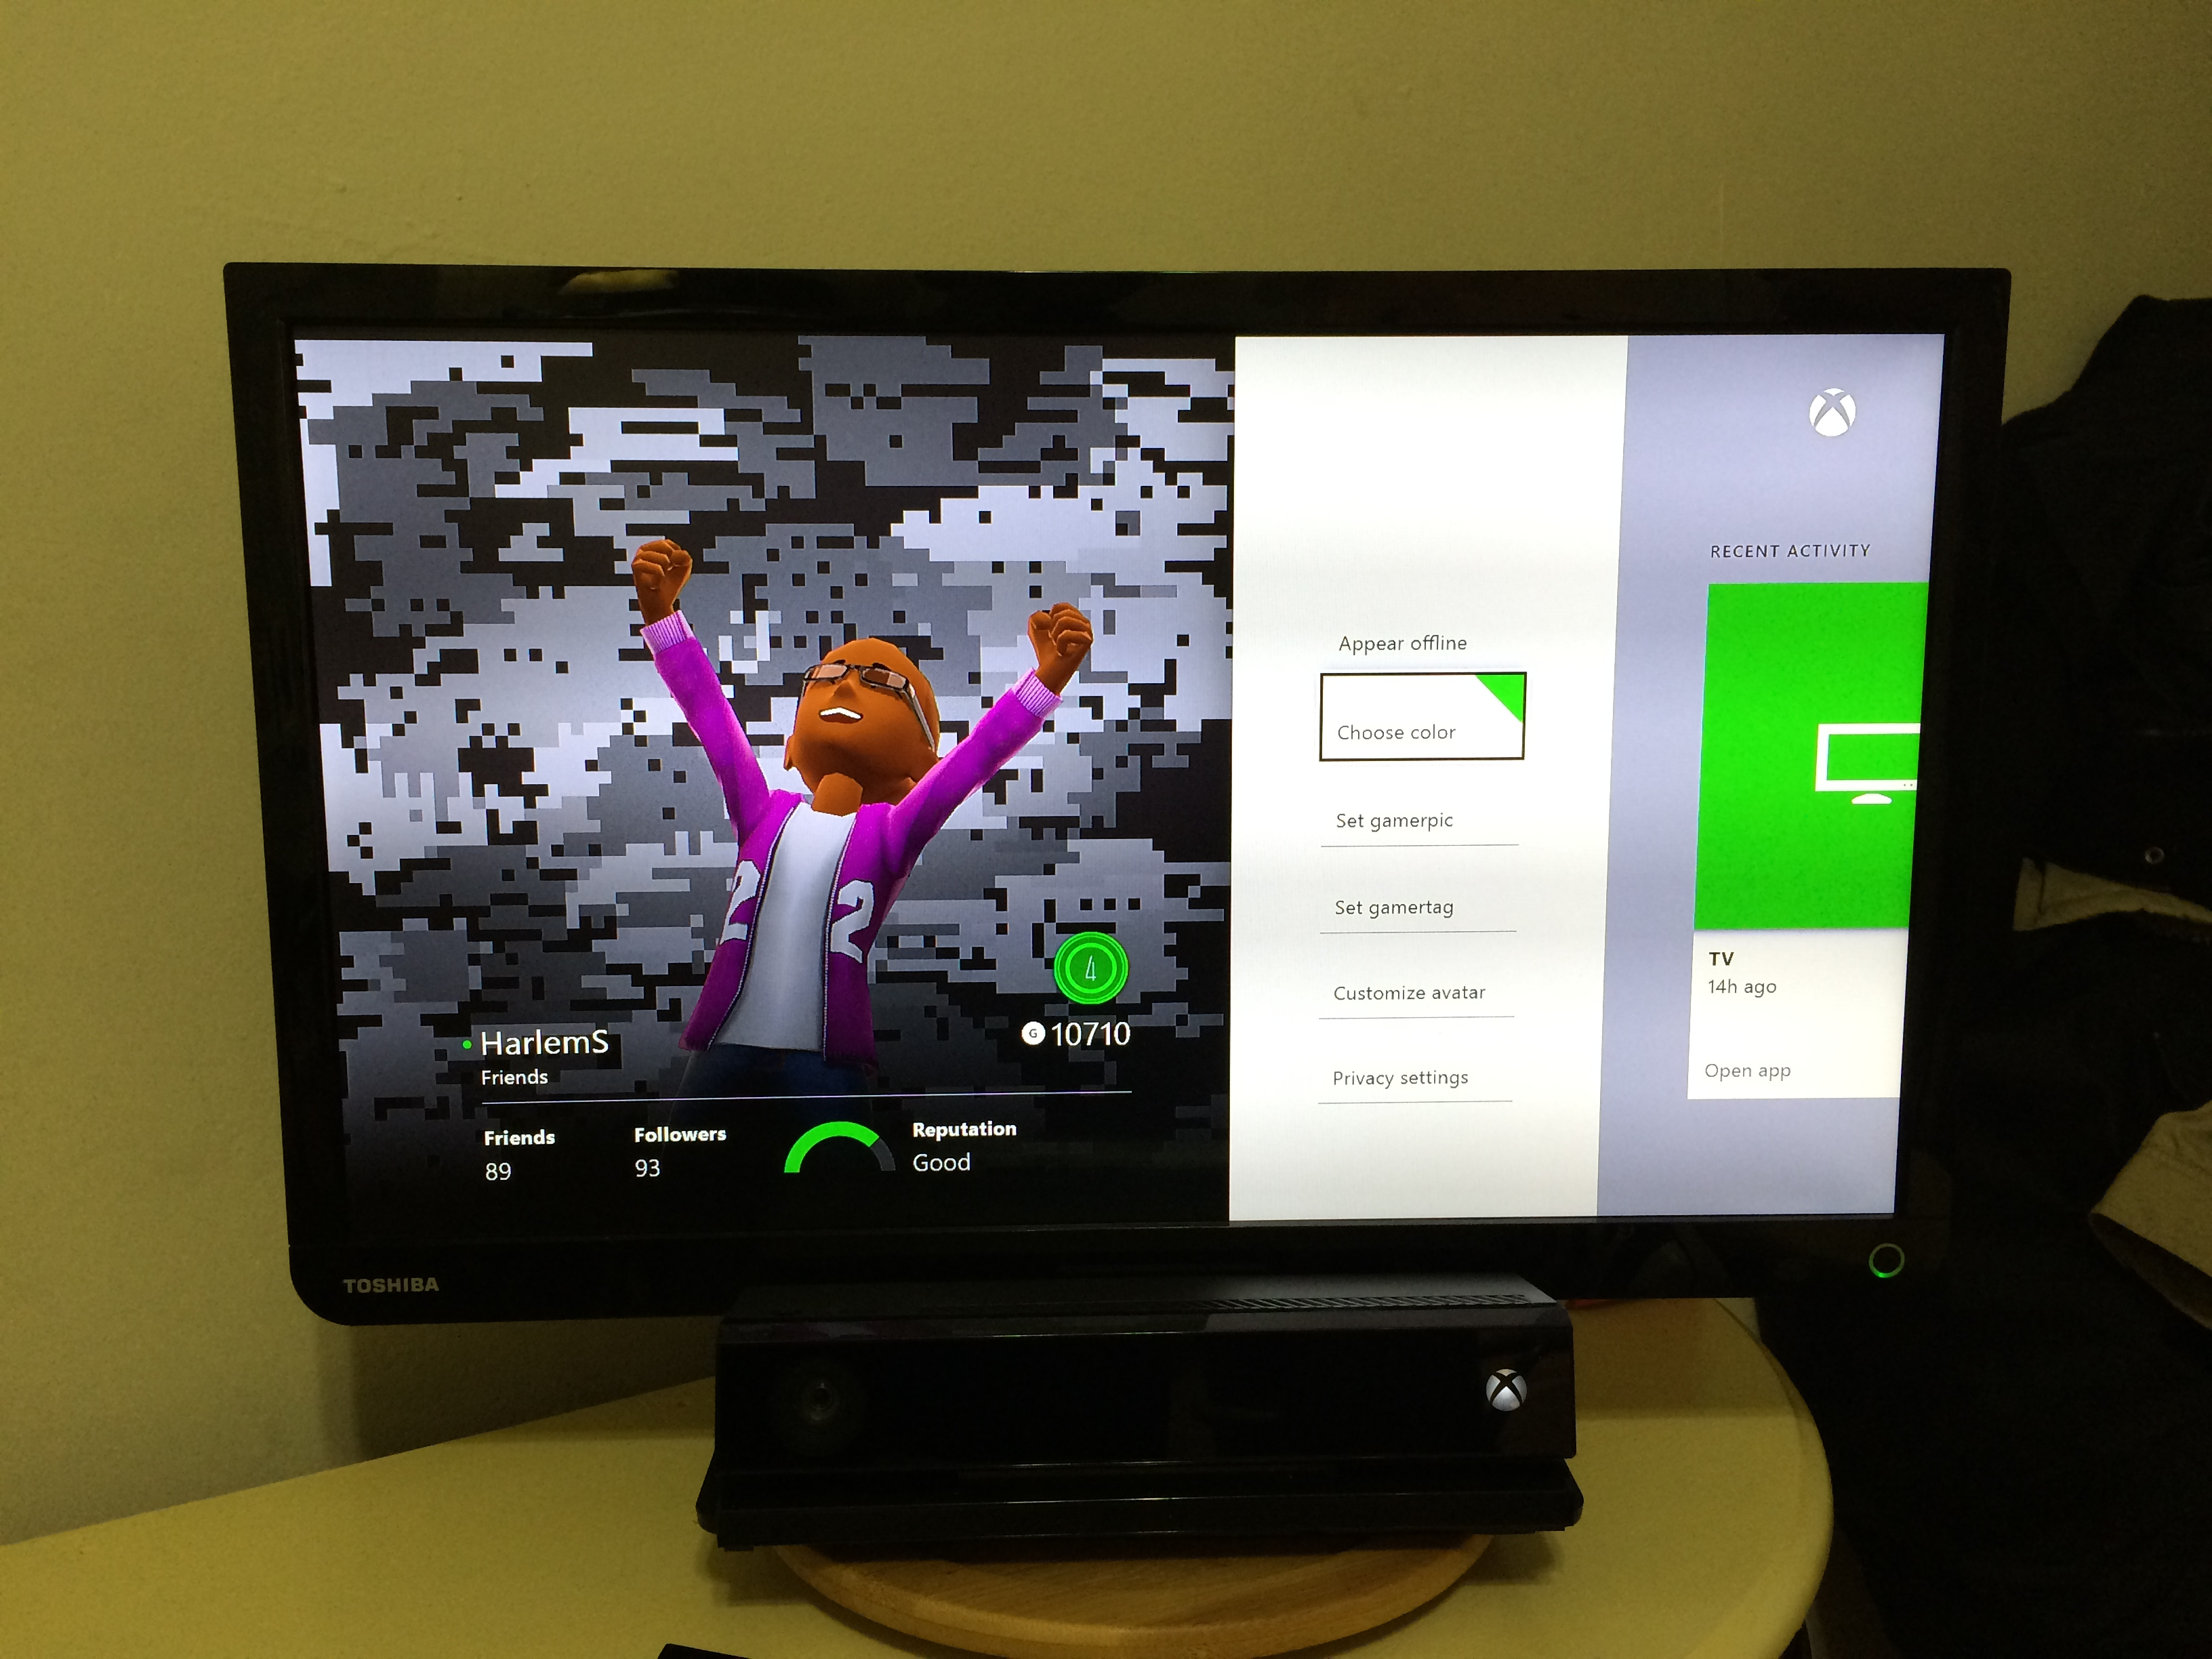 How to Customize the Xbox One Interface